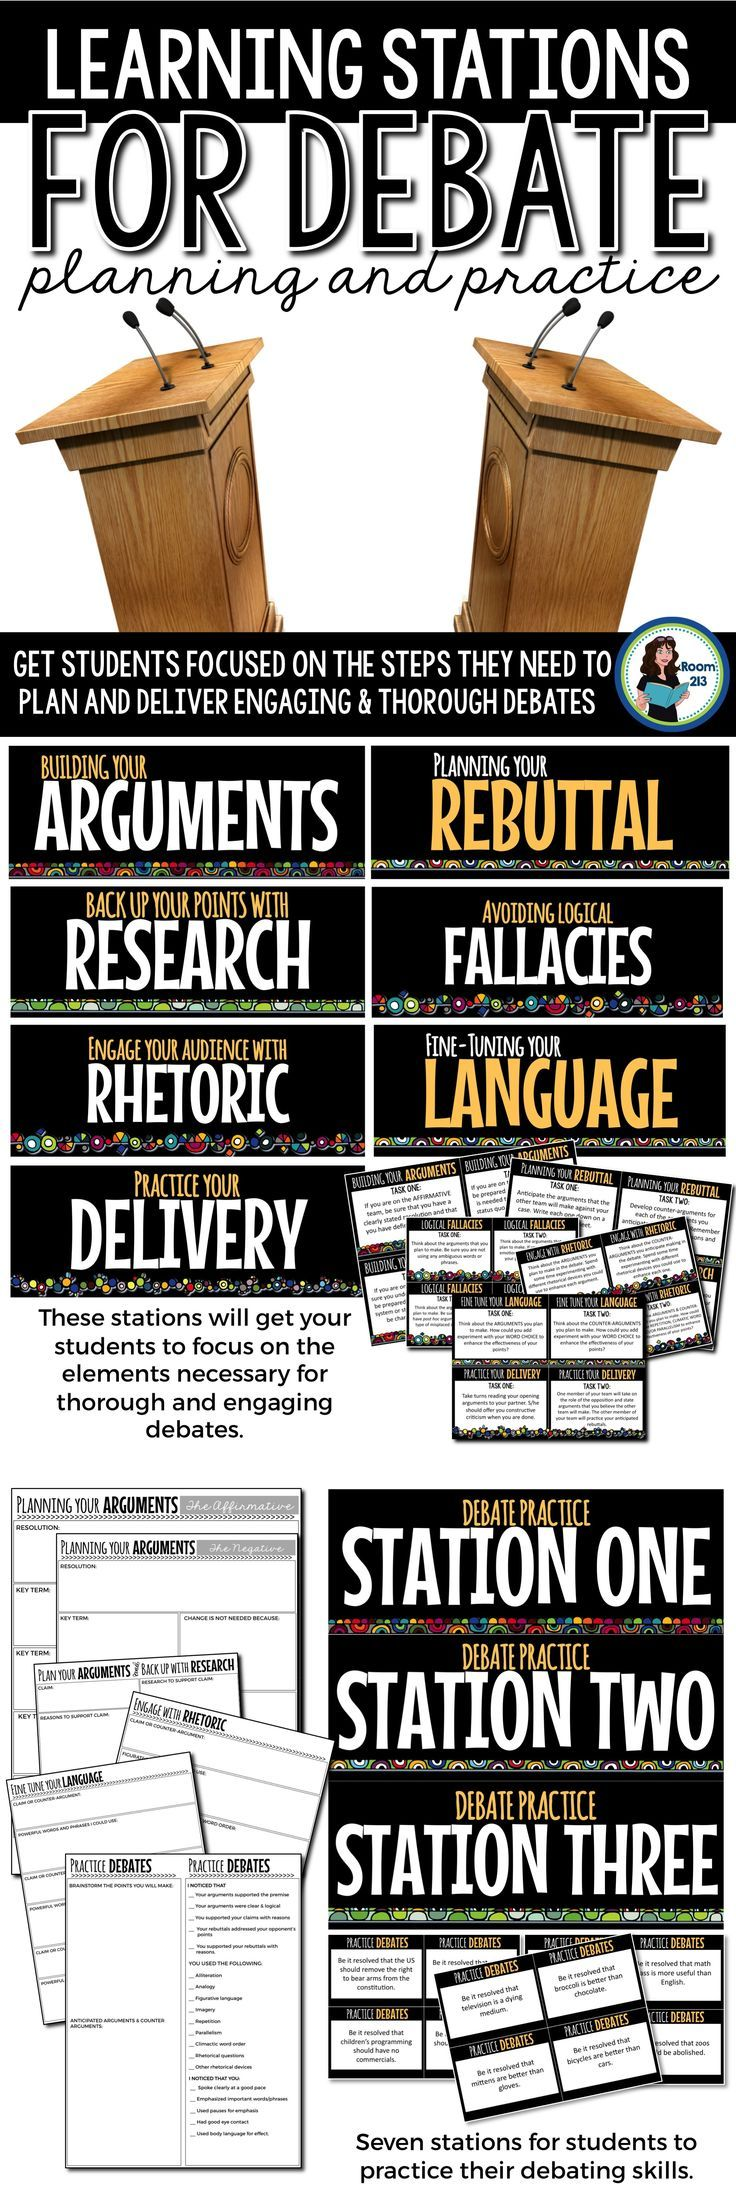 These stations will get your students focused on the elements needed for thorough and engaging debates -- while getting them up and moving too!